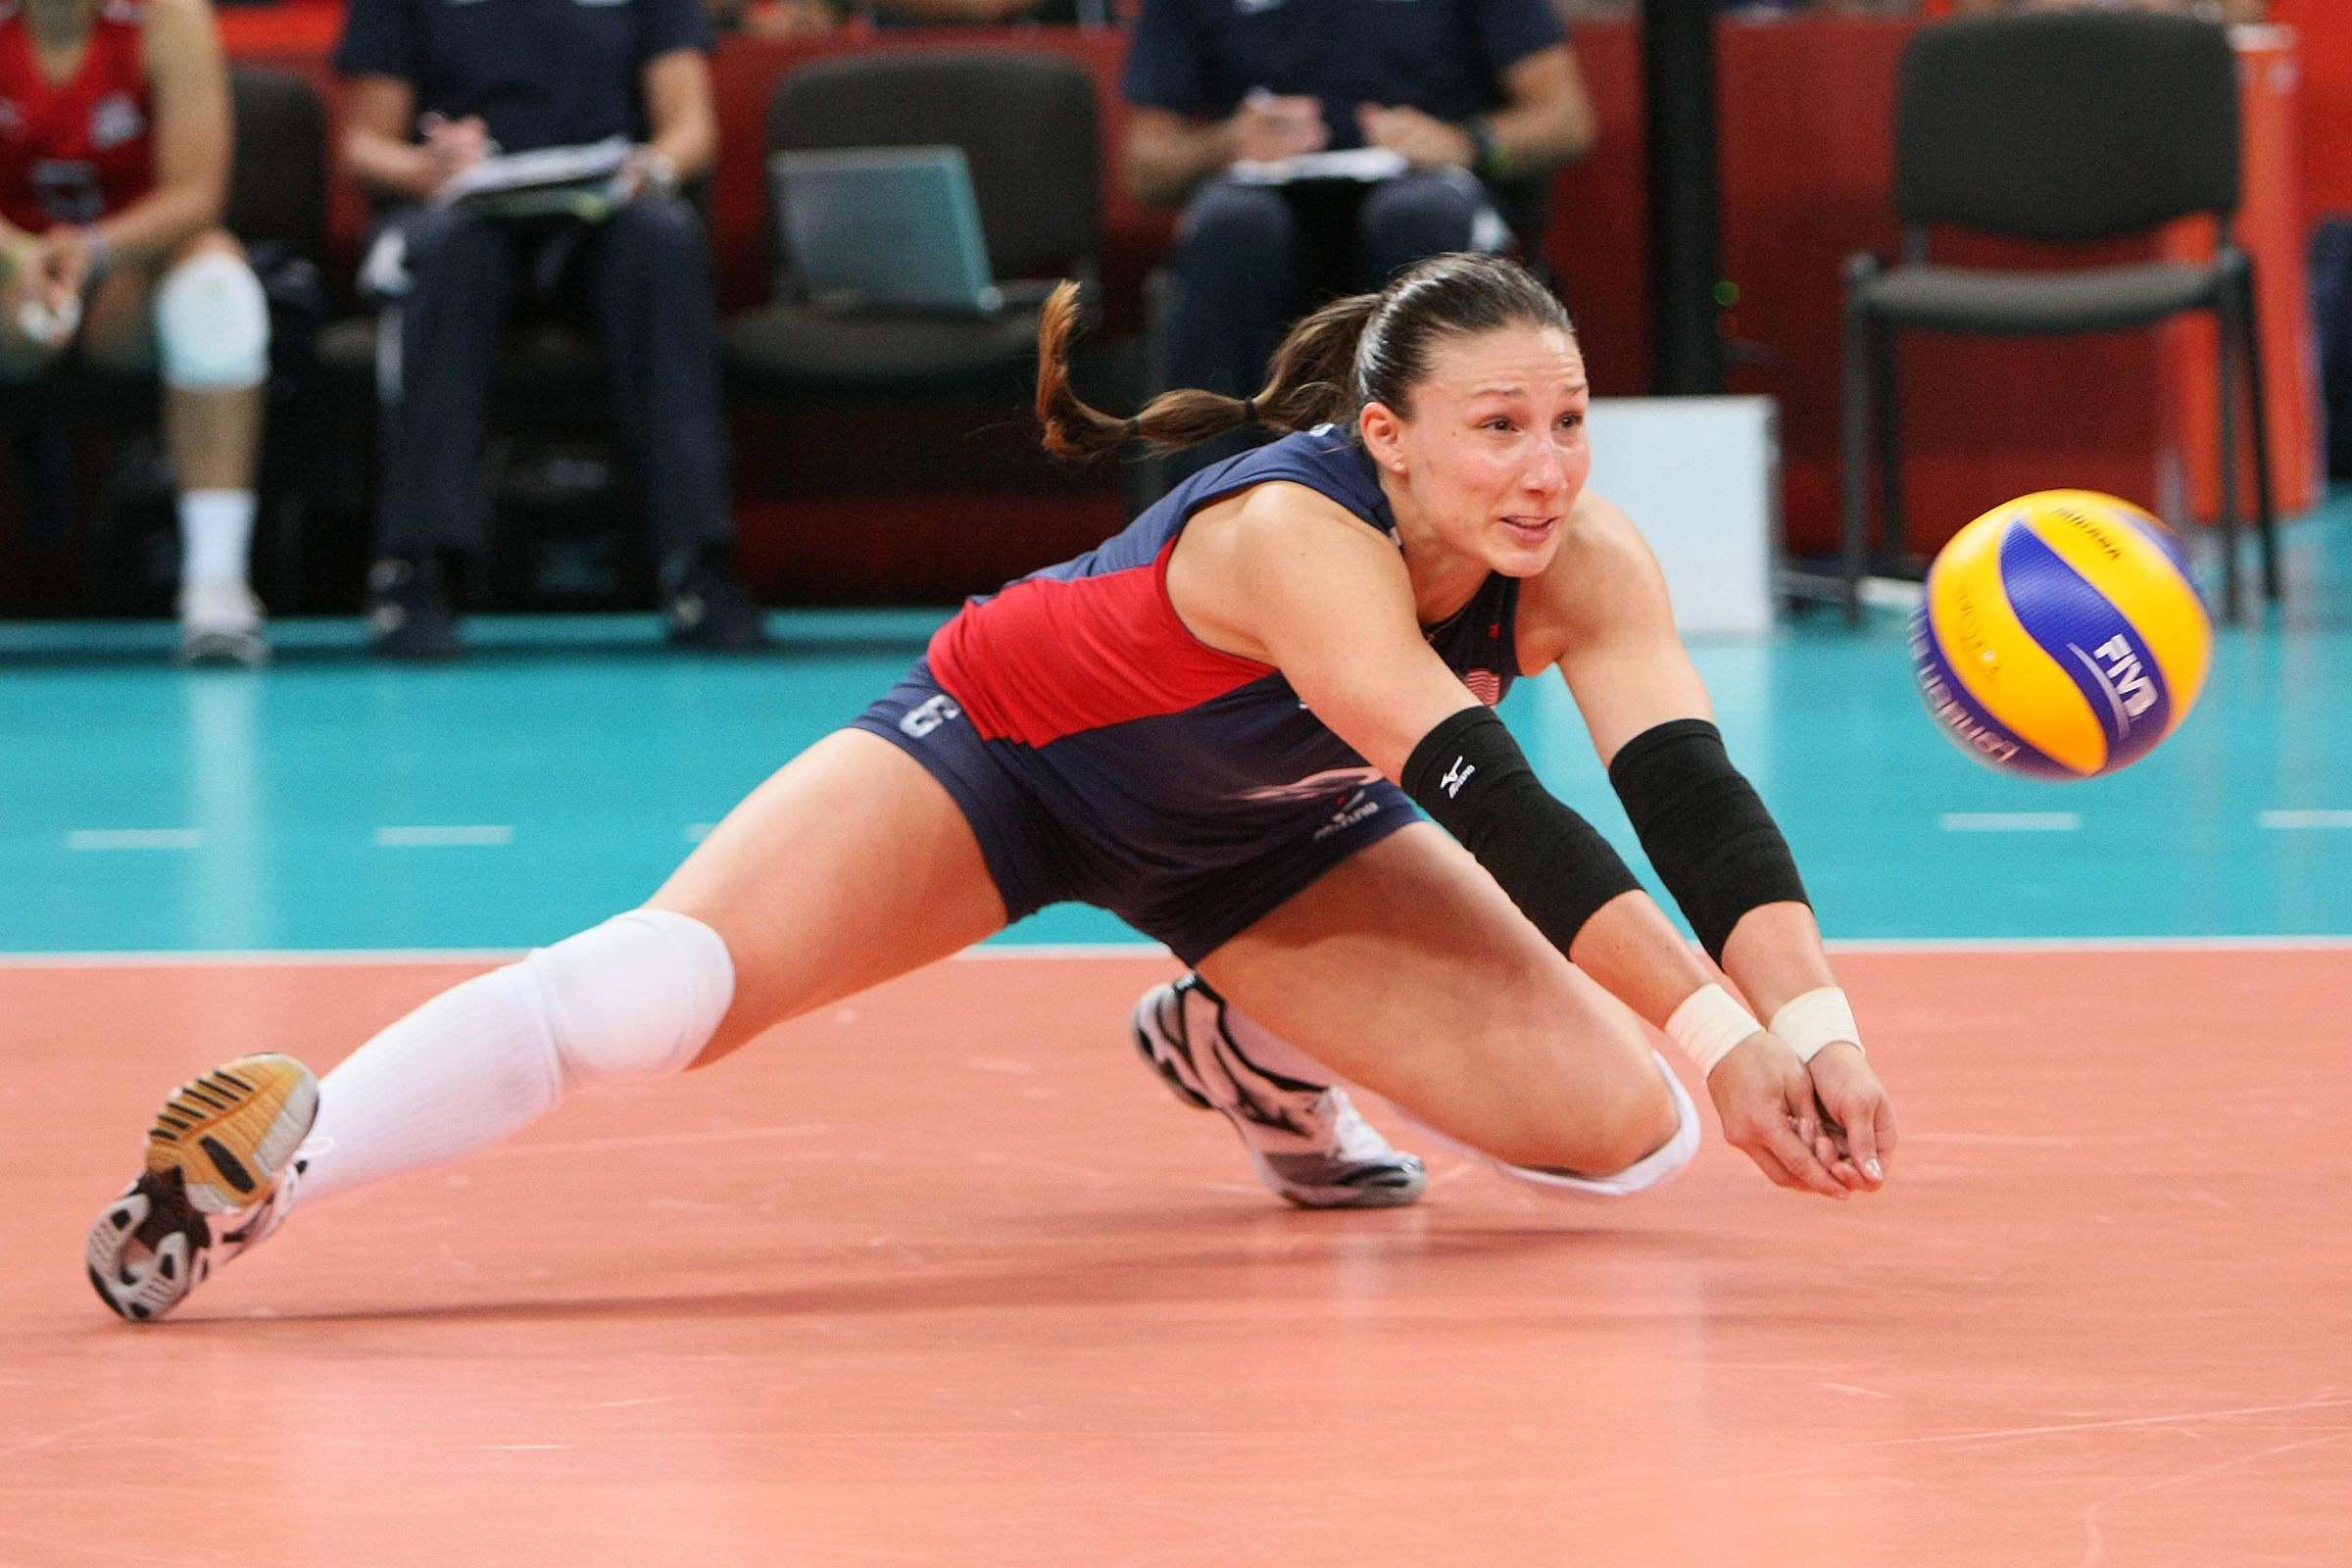 Volleyball Libero Google Search Libero Volleyball Volleyball Usa Volleyball